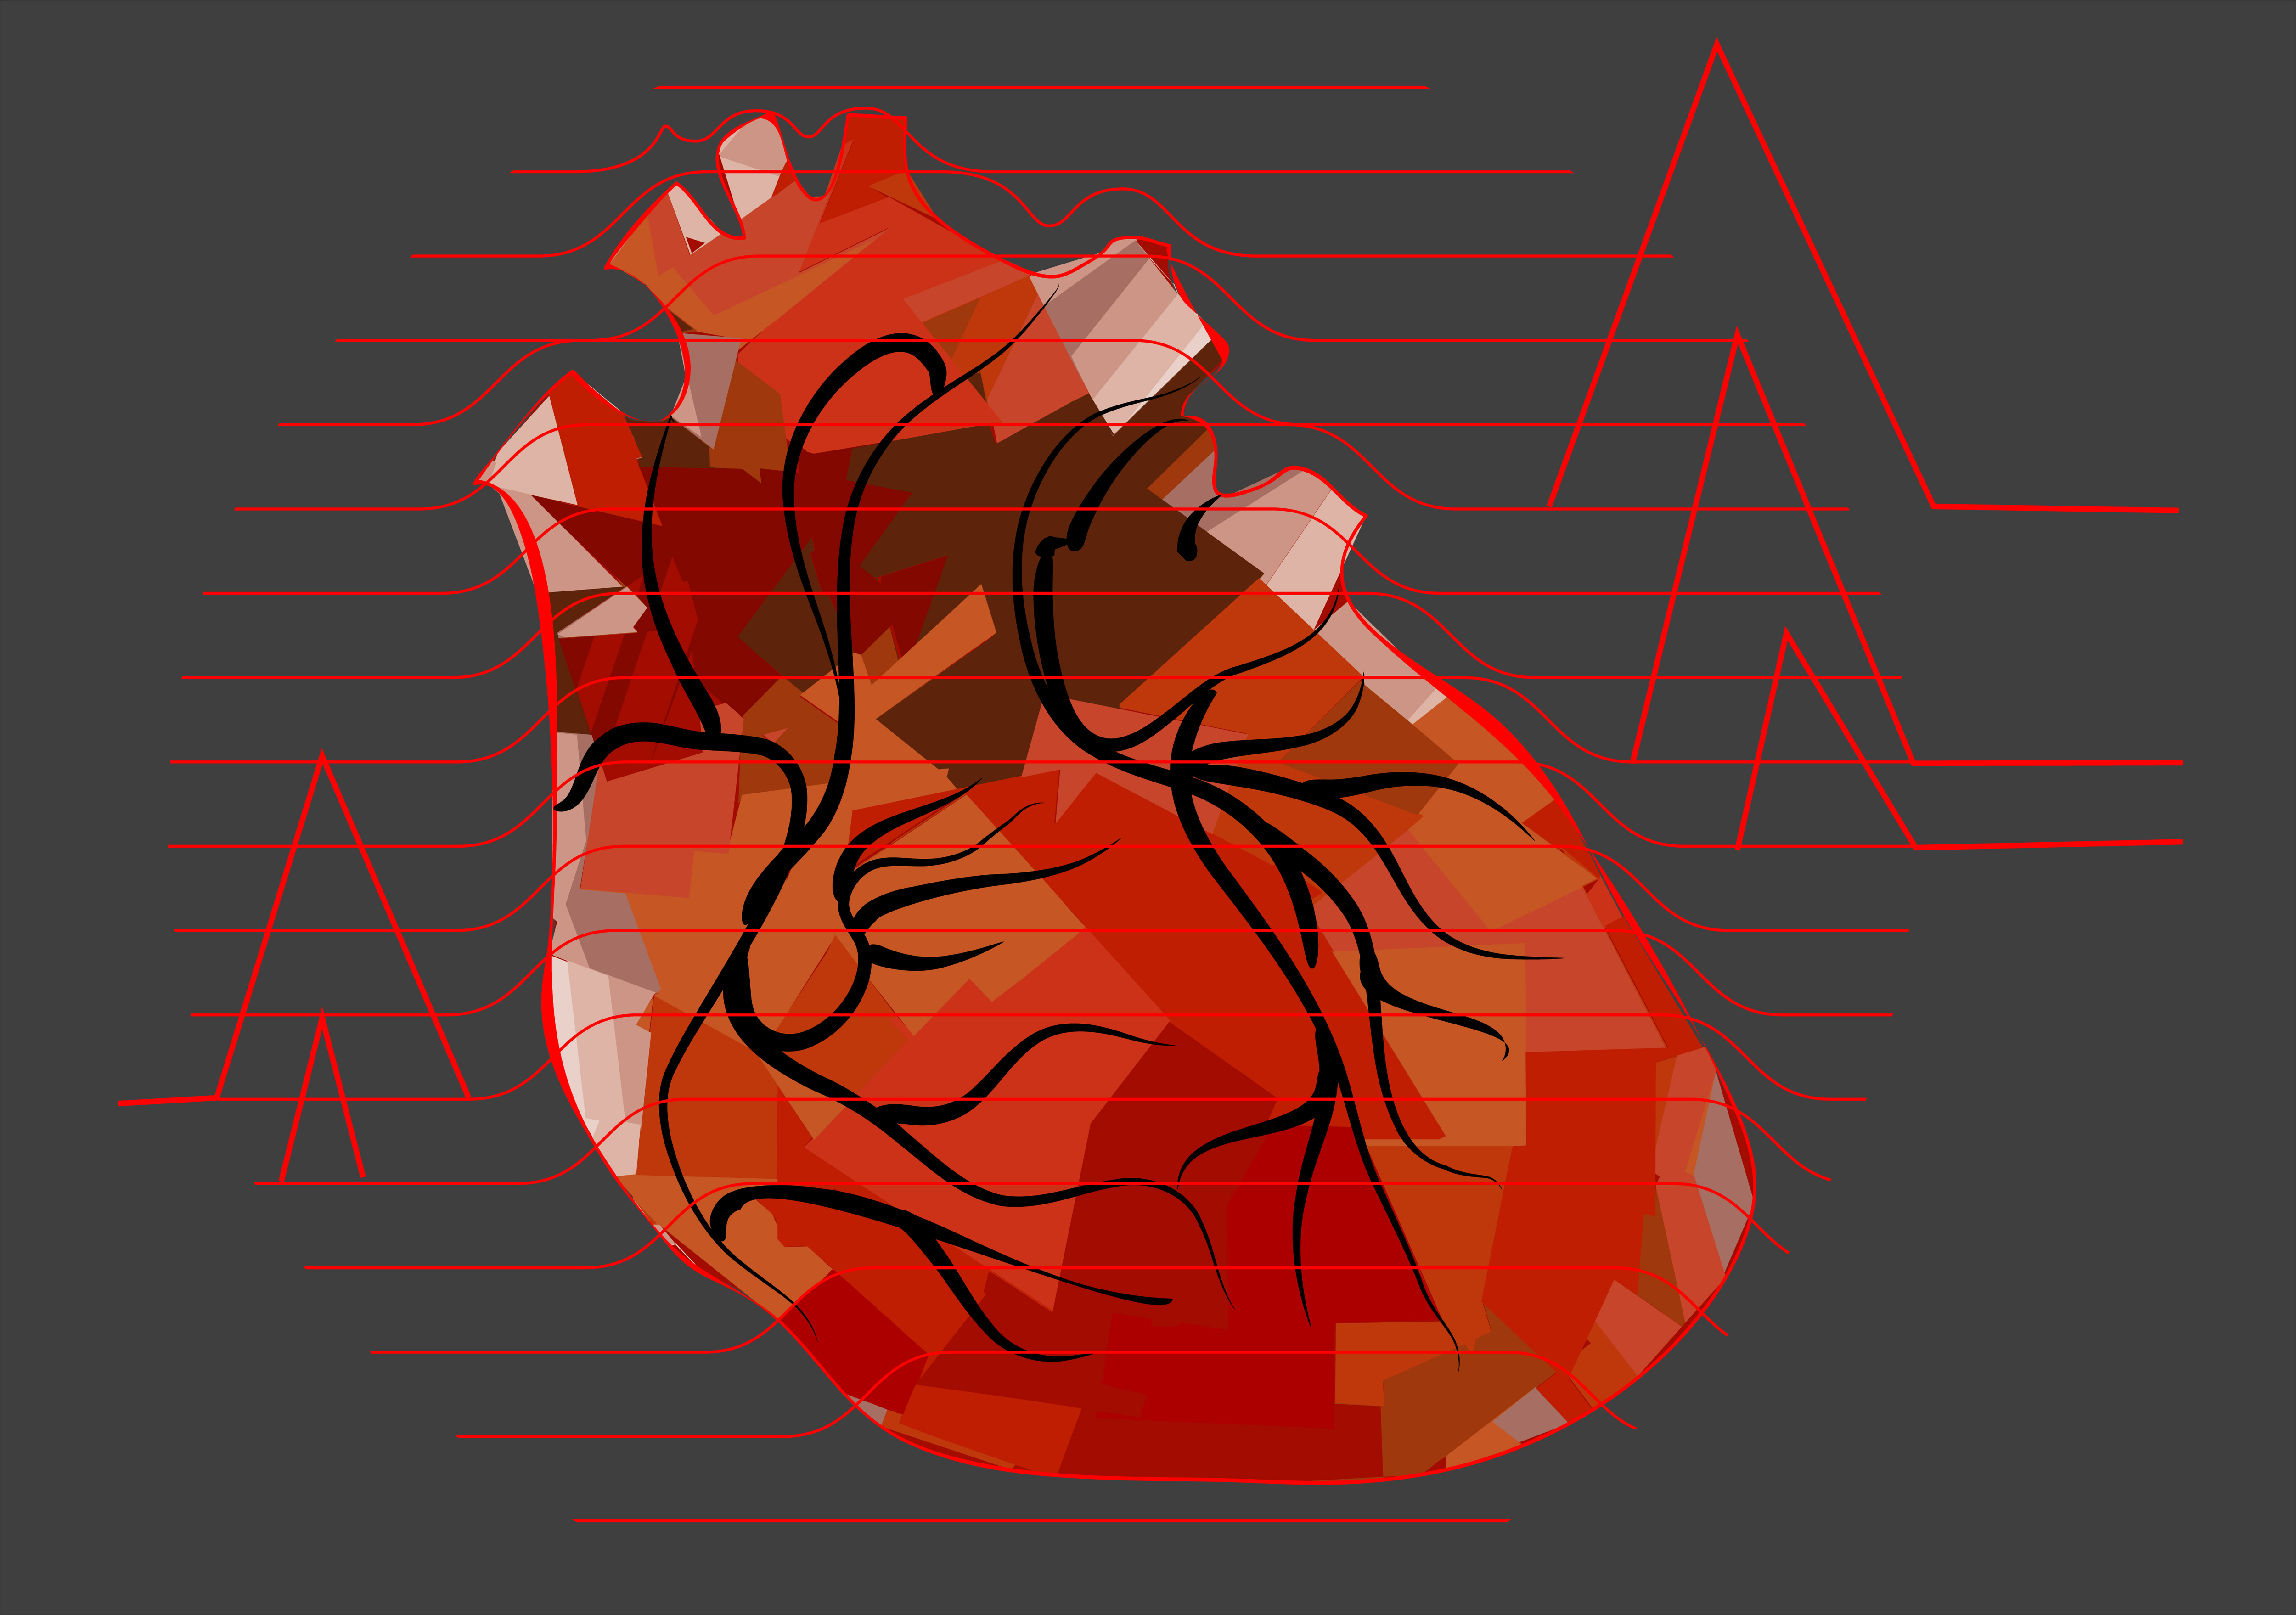 Silent heart attacks: Much more common than we thought in both men ...